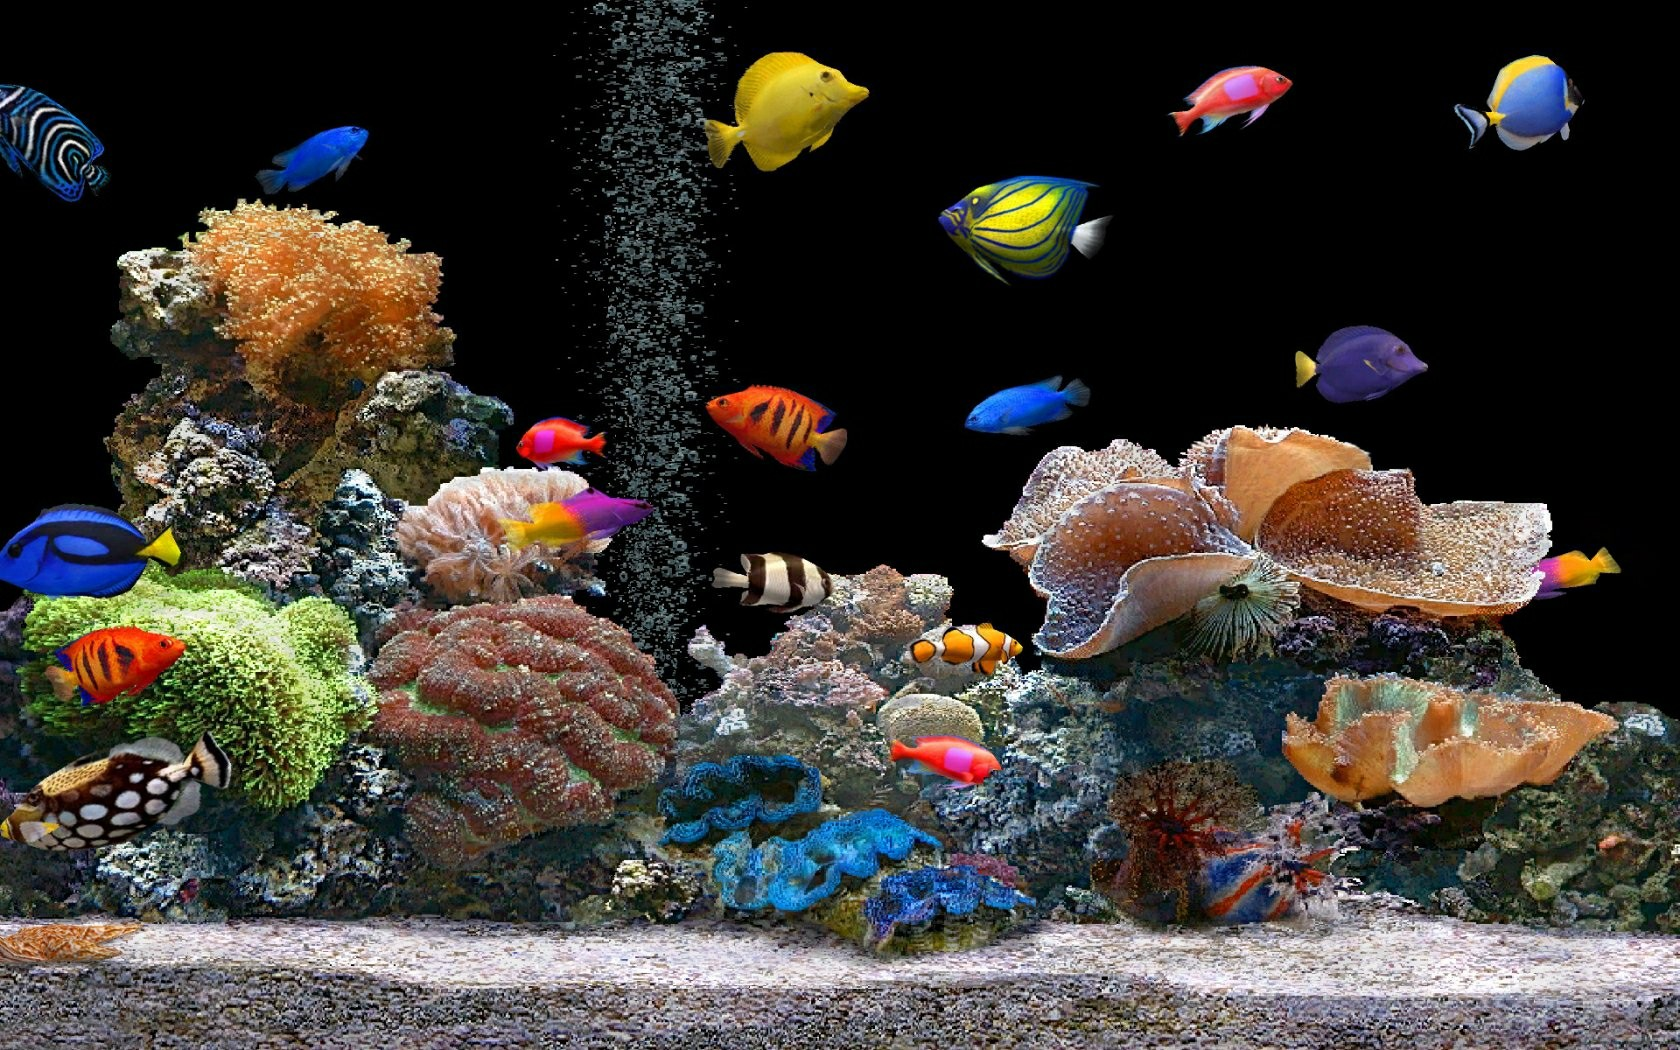 Download-Live-Hd-Fish-Aquarium-3d-Desktop-Aquarium-3d-wallpaper-wp3404887